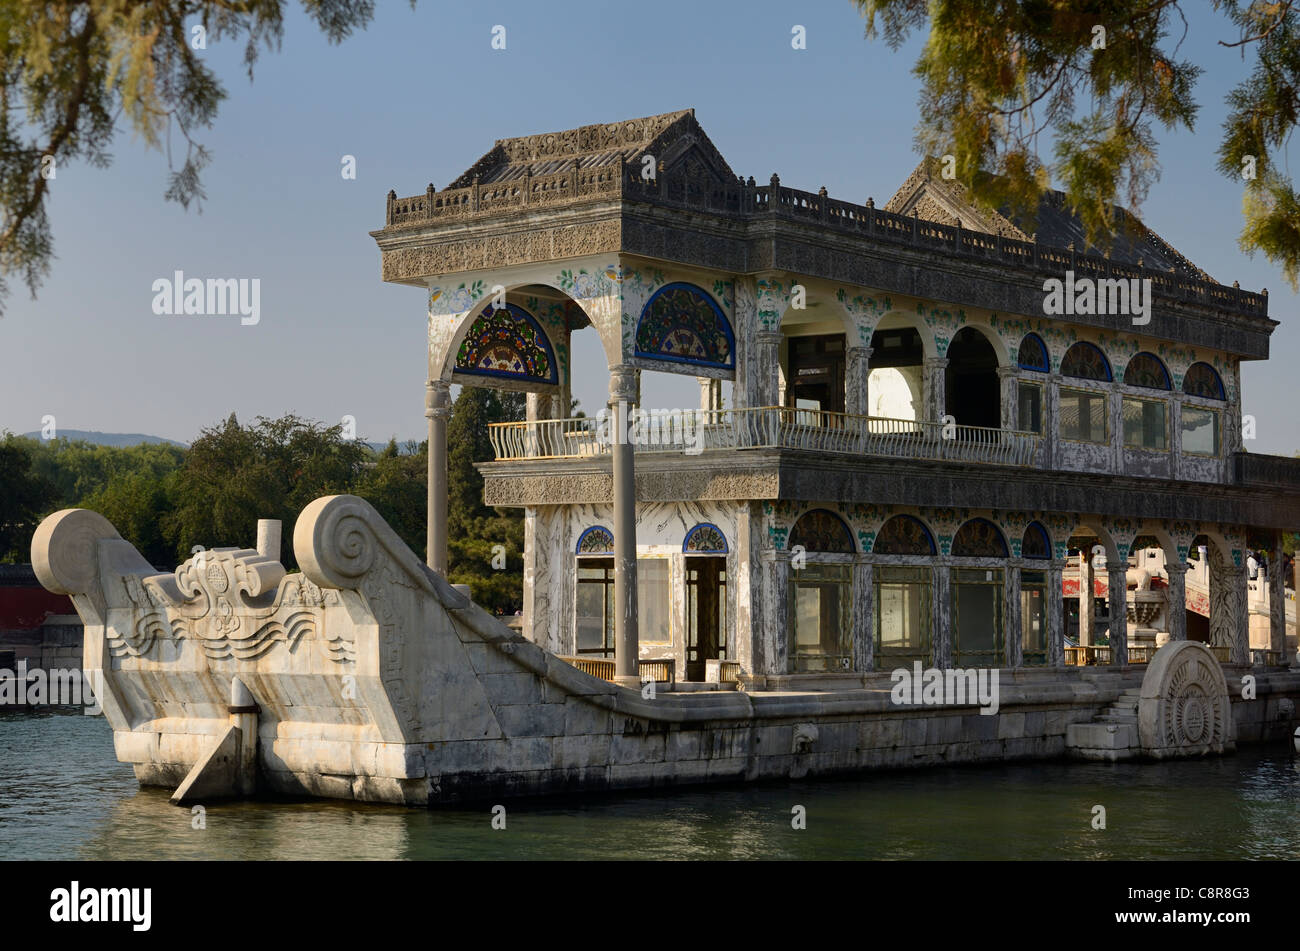 Clear and Peaceful or Marble boat on Kunming Lake at Summer Palace Beijing China - Stock Image